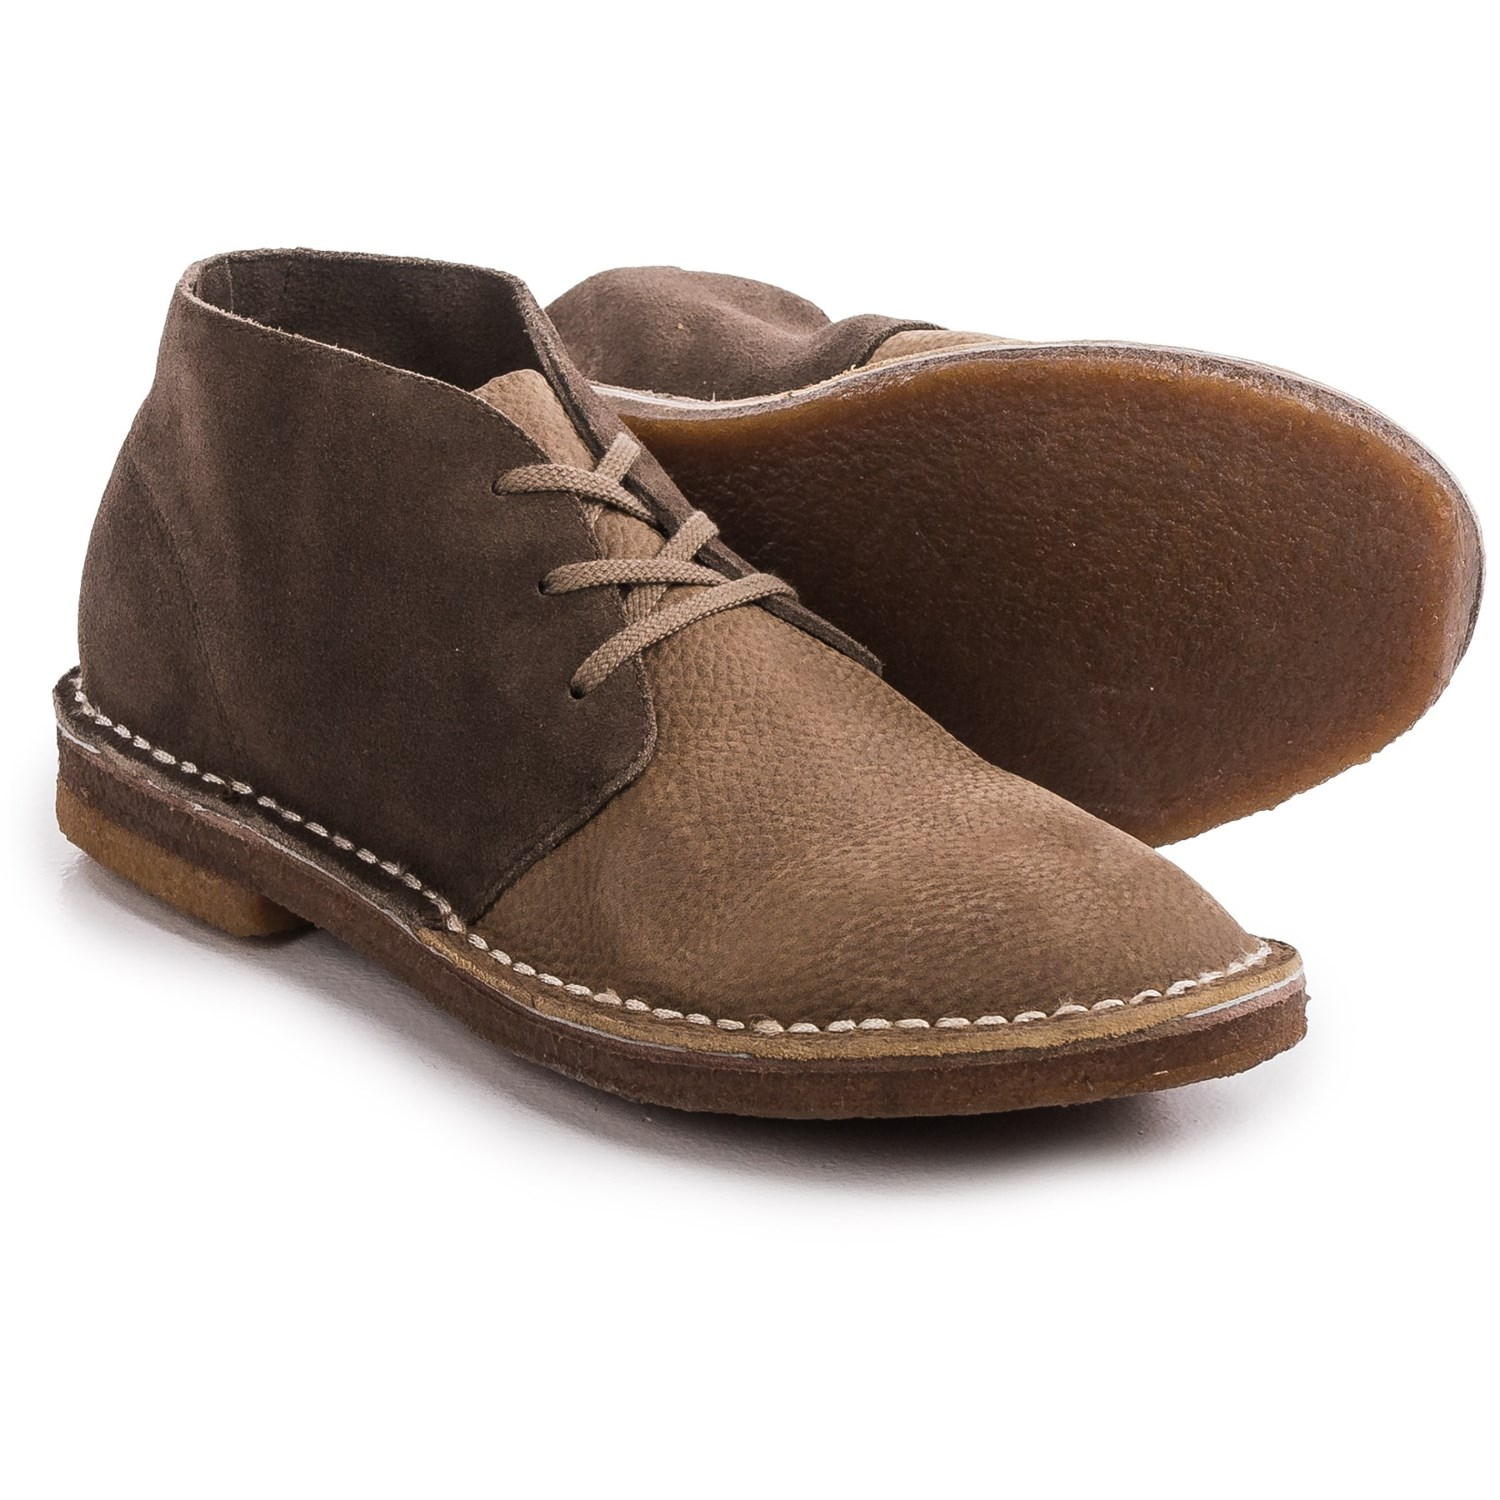 Seavees 12/67 Leather Chukka Boots (For Men) - Save 77%